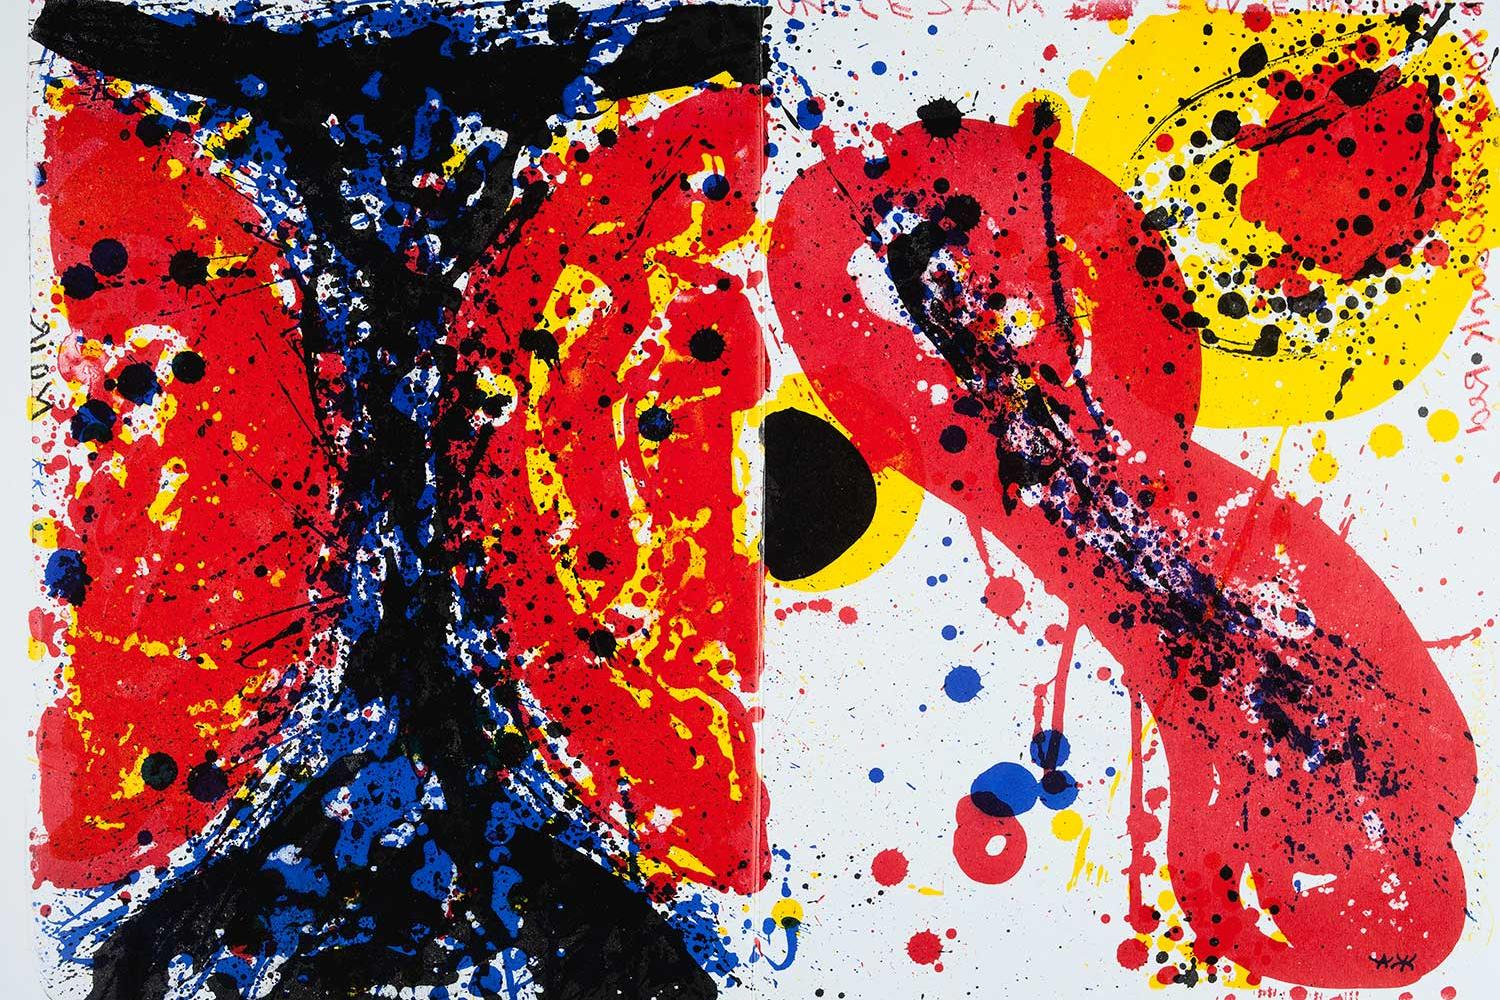 abstract print with large areas of red, yellow, white and dark blue